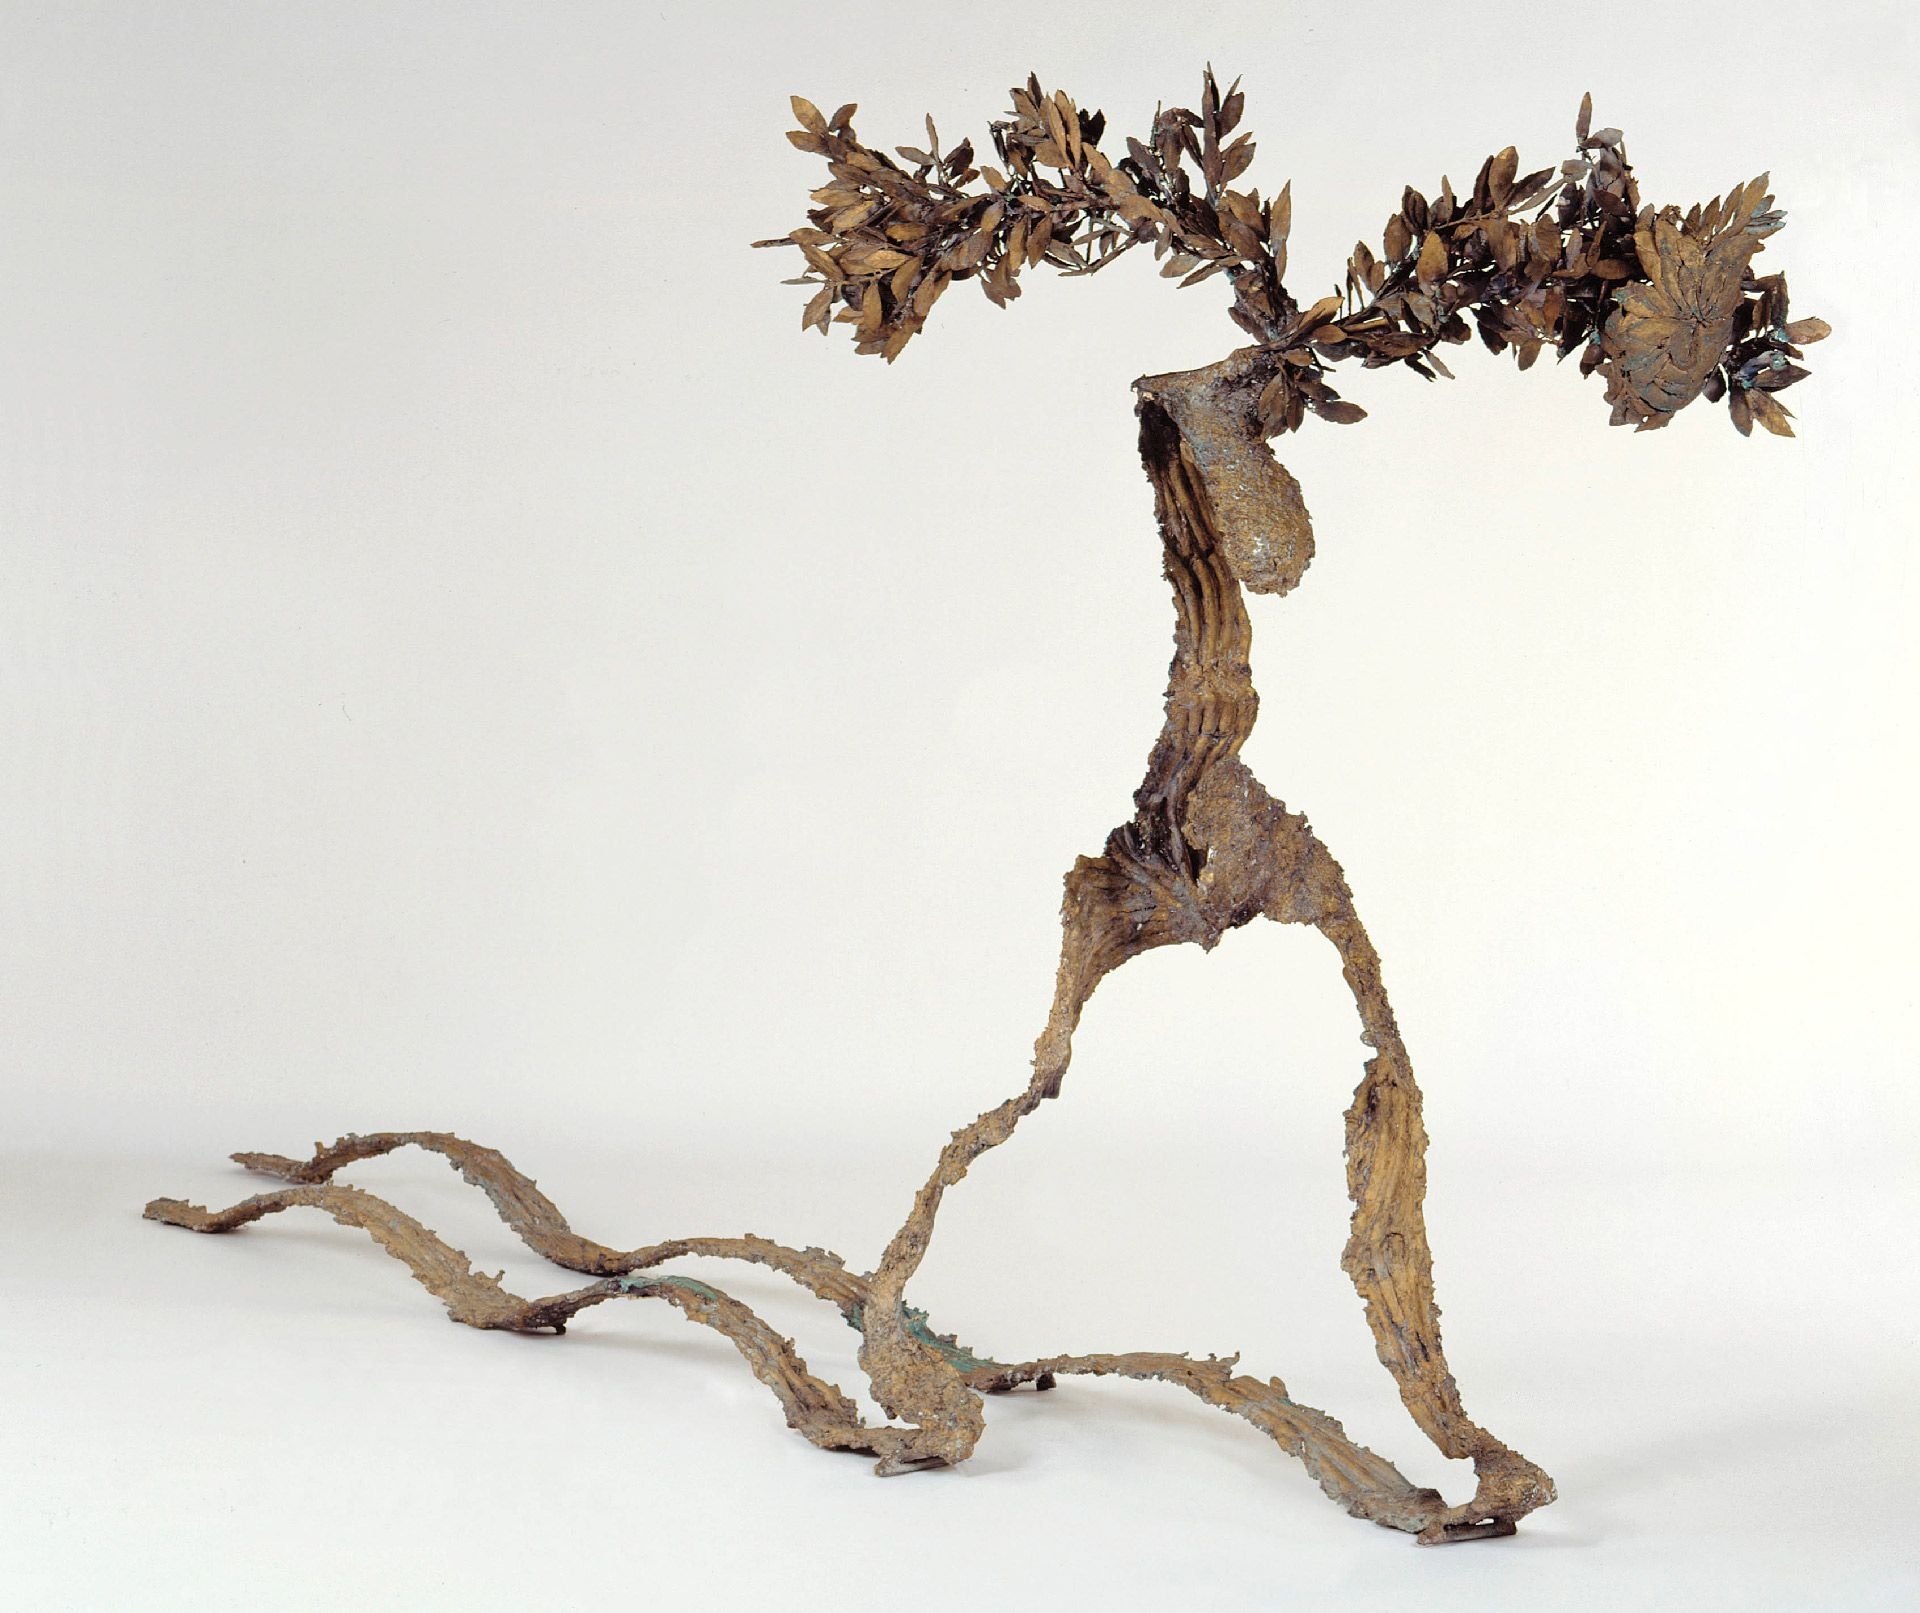 Giuseppe Penone, Path, 1983, bronze, single cast, 180 x 400 x 45 cm. Purchase, Horsley and Annie Townsend Bequest.